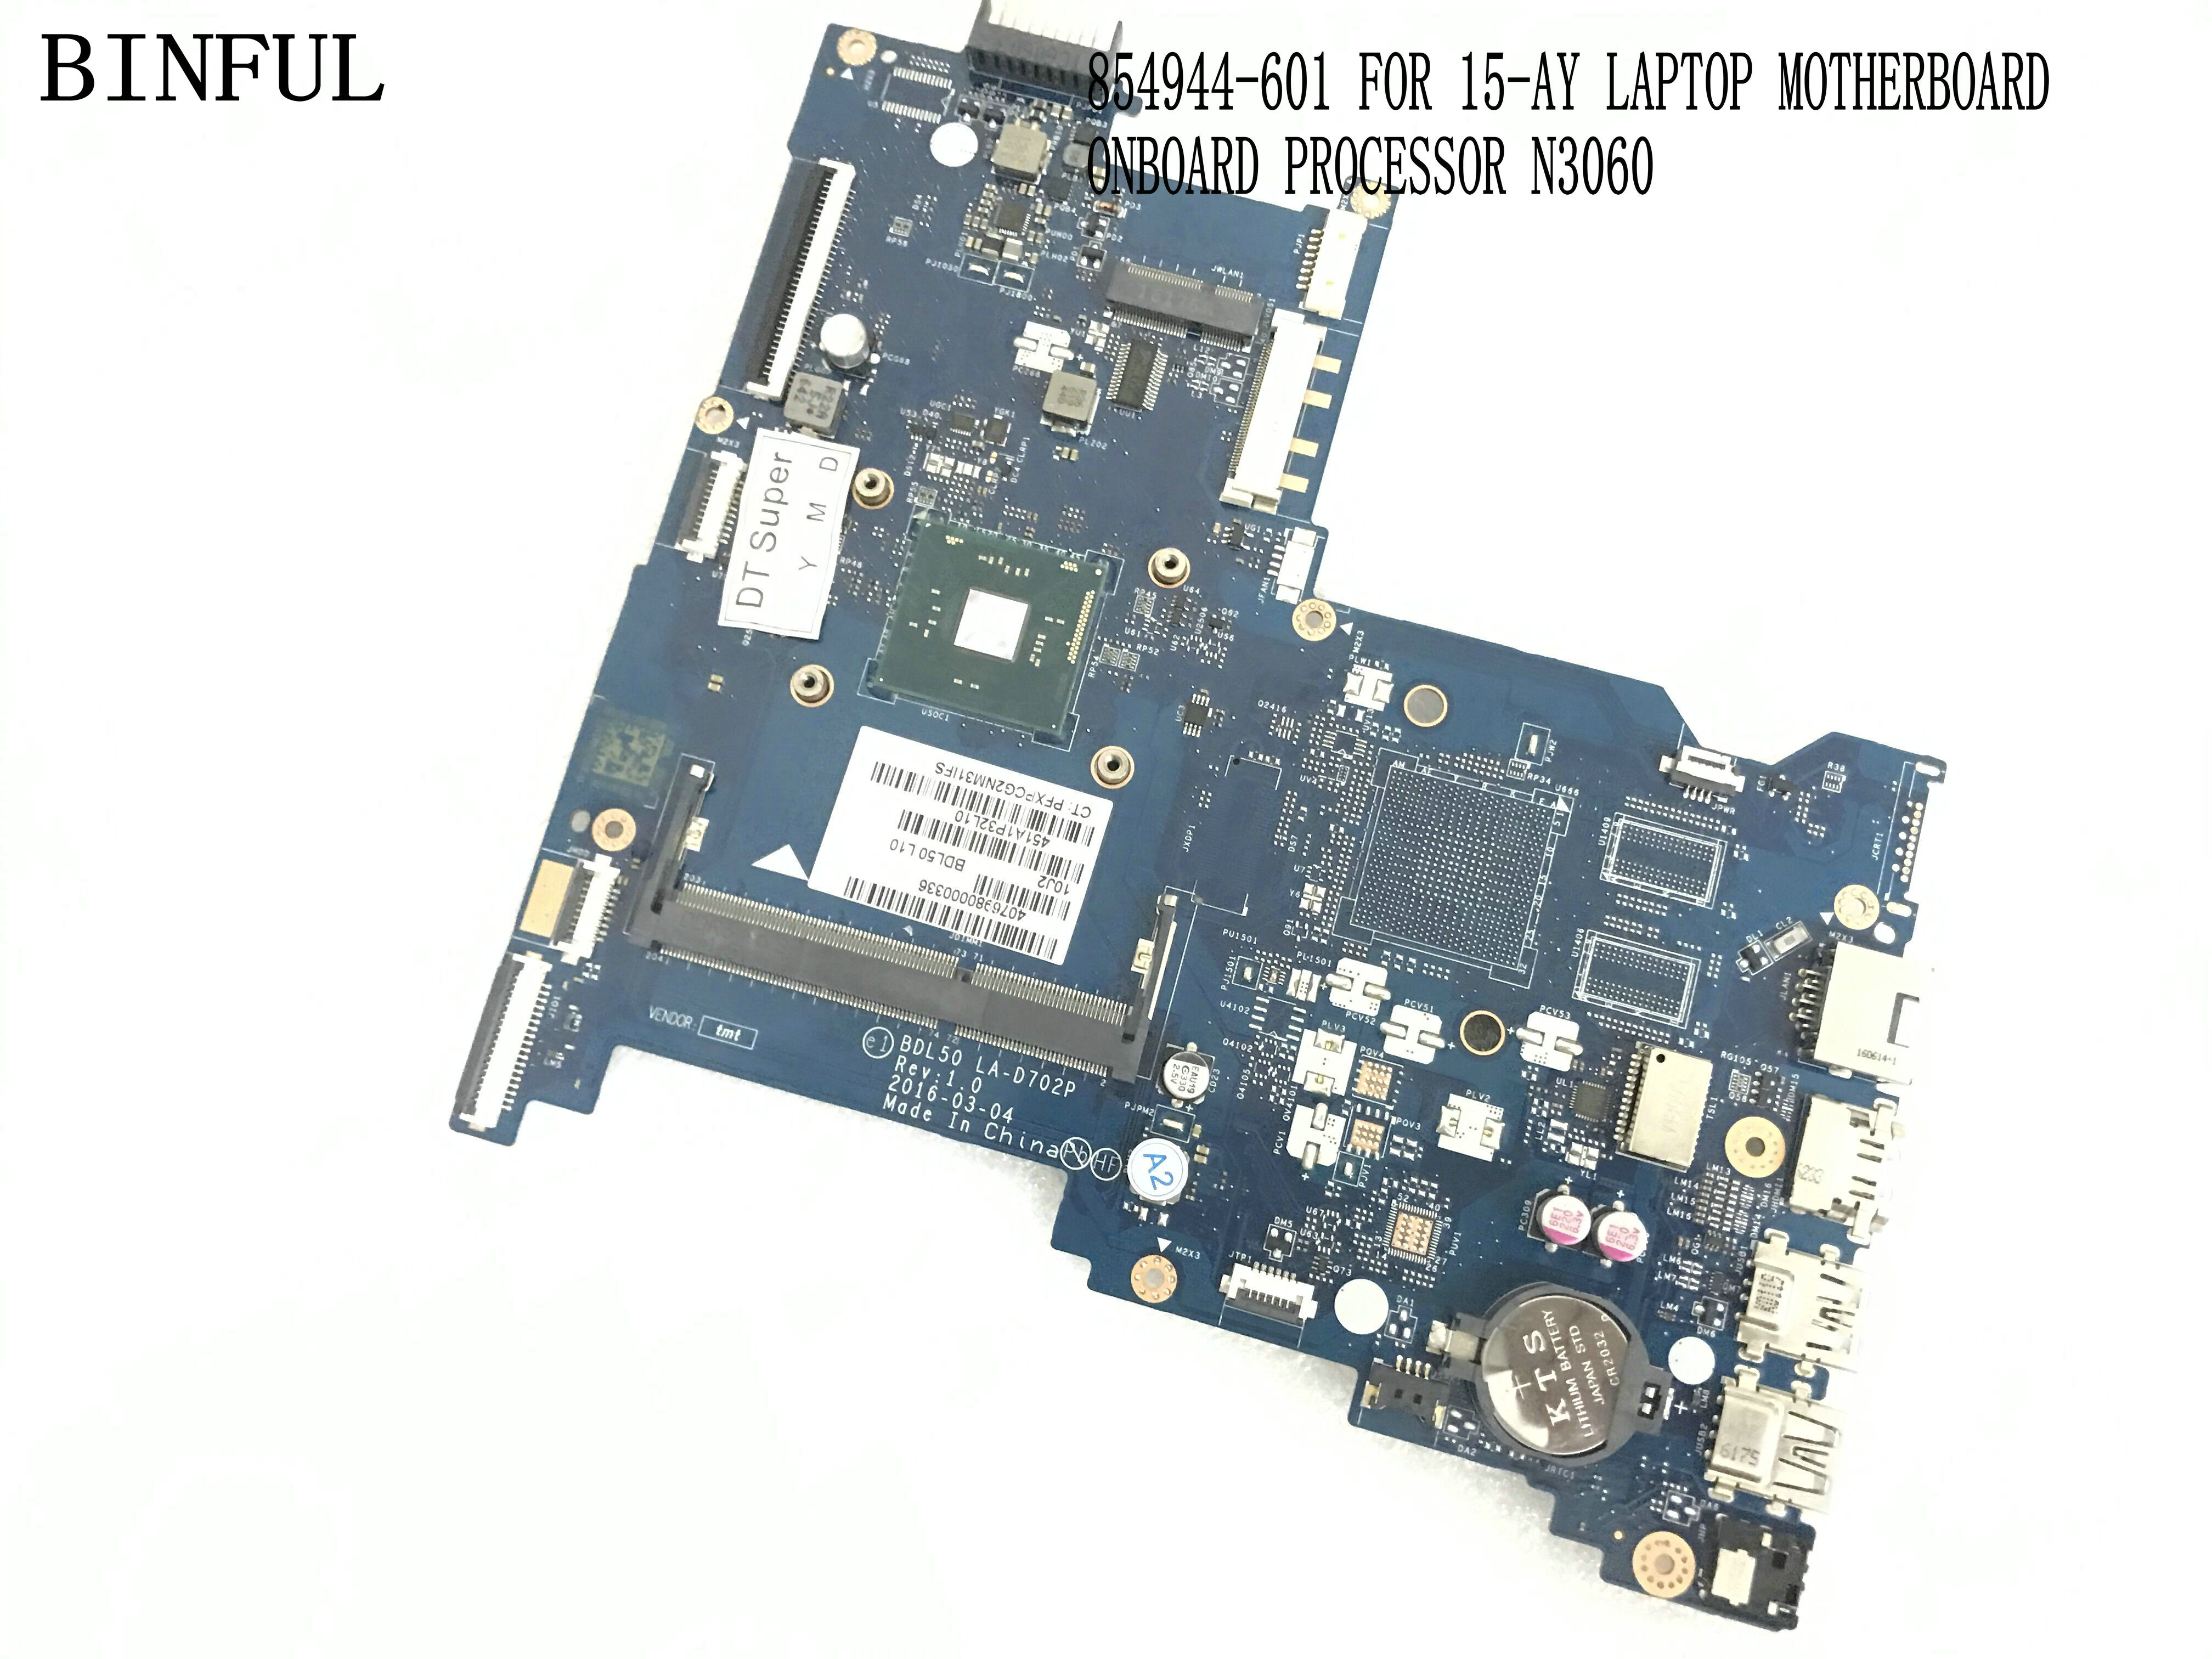 BiNFUL STOCK NEW 854944 601 BLD50 LA D702P LAPTOP MOTHERBOARD FOR HP 15 AY NOTEBOOK MAINBOARD ONBOARD N3060 PROCESSOR-in Motherboards from Computer & Office    1